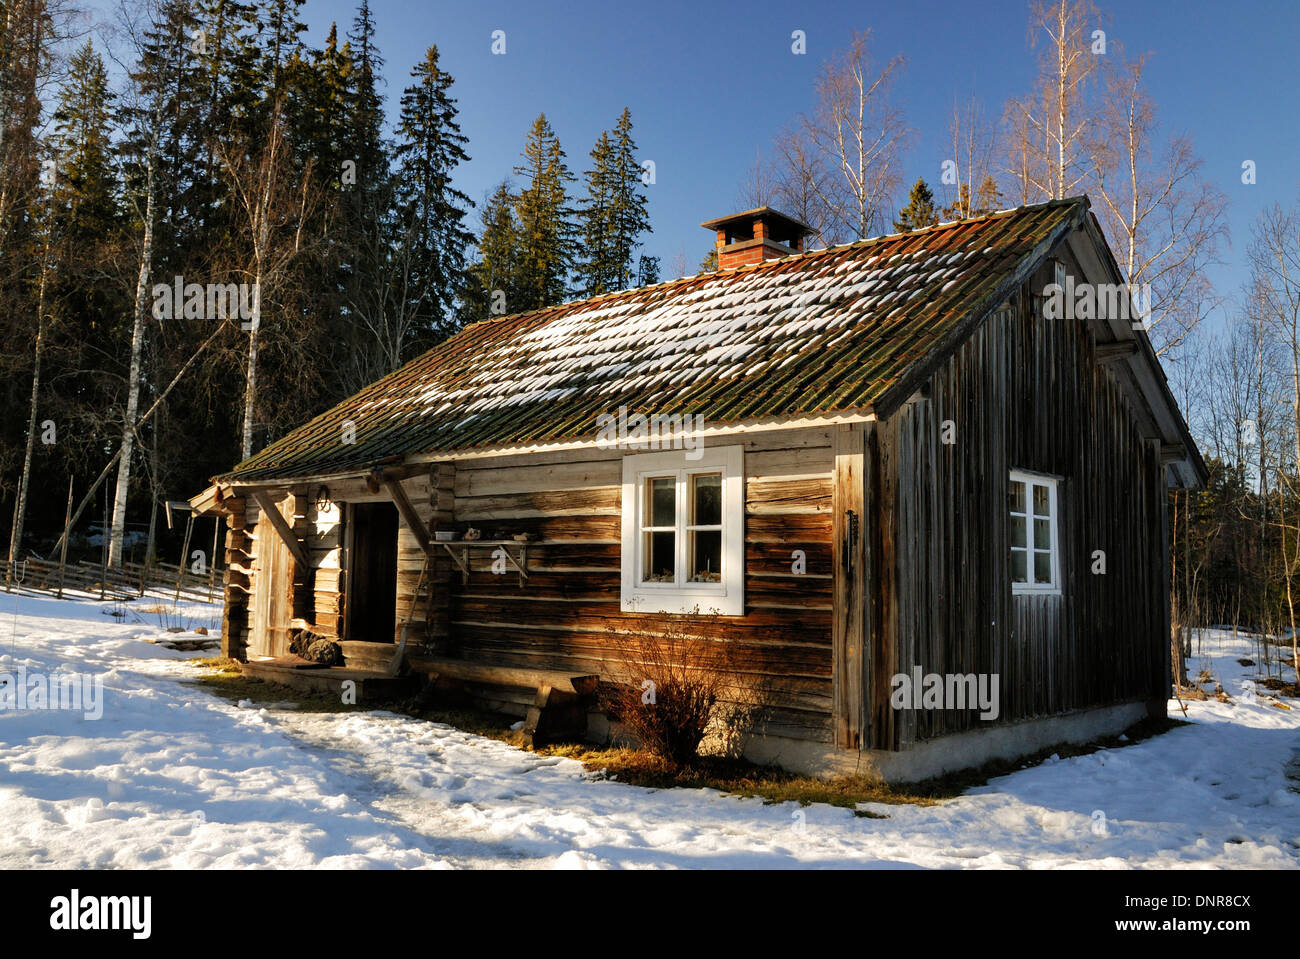 Old house in snow - Stock Image